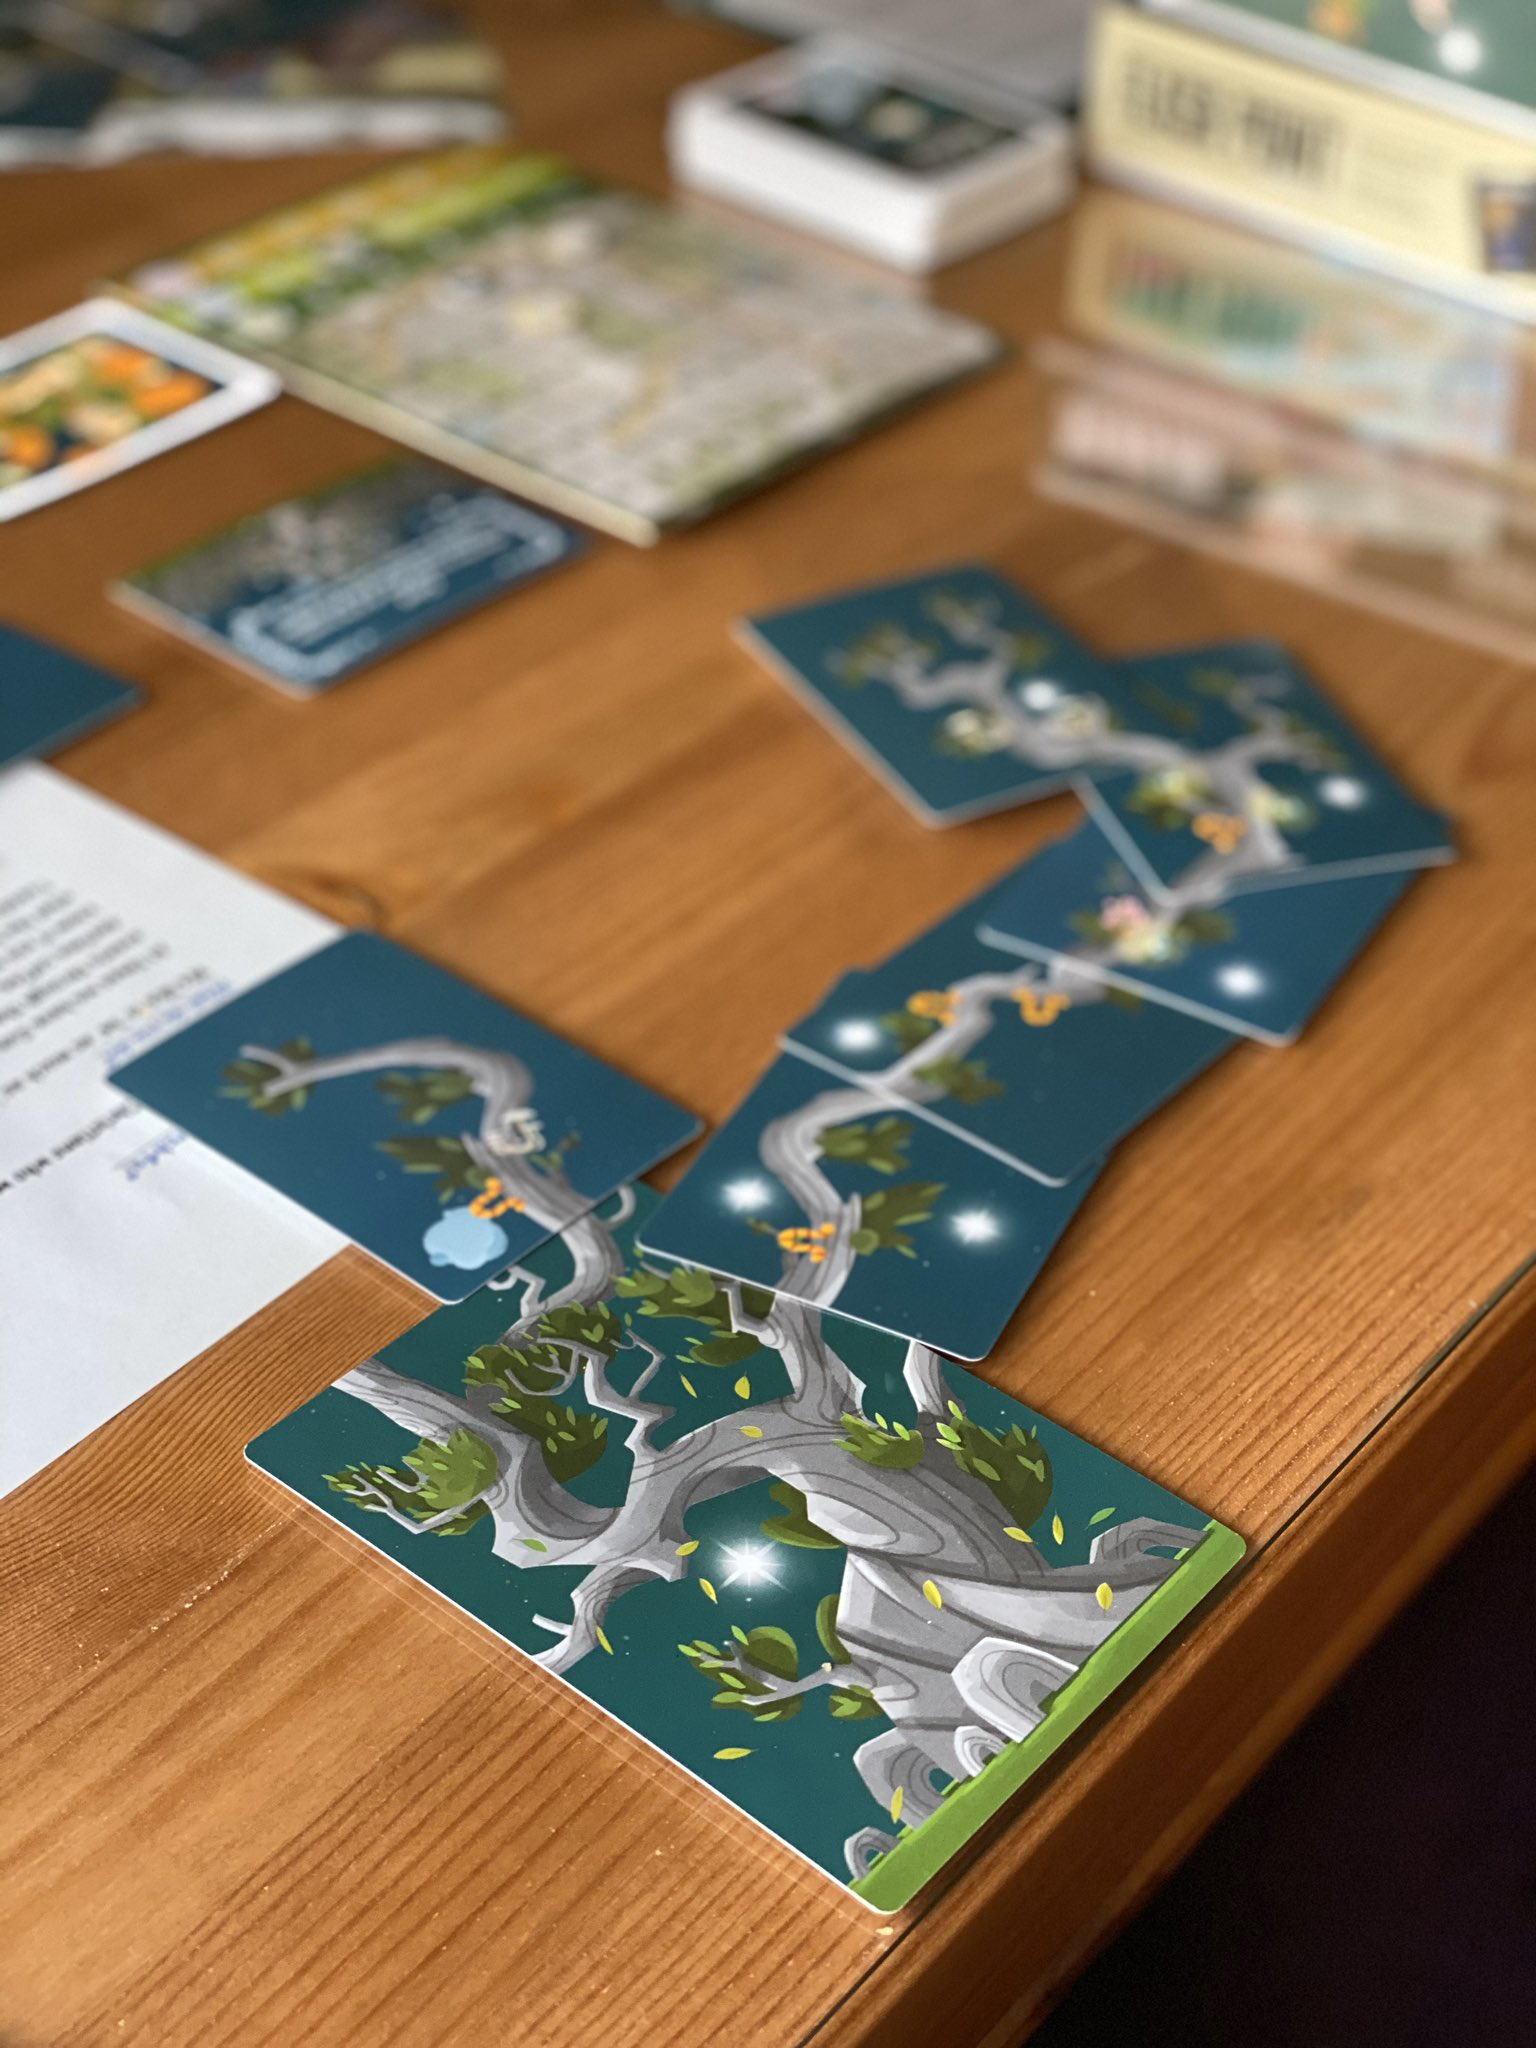 Ooo loved playing Kodama! Quick, clever and pretty! #kodama #zatugames #boardgames #boardgame #zatugamesuk #boardgamegeek #bgg #boardgamelife #boardgamesoftwitter https://t.co/ktbunmIF7p